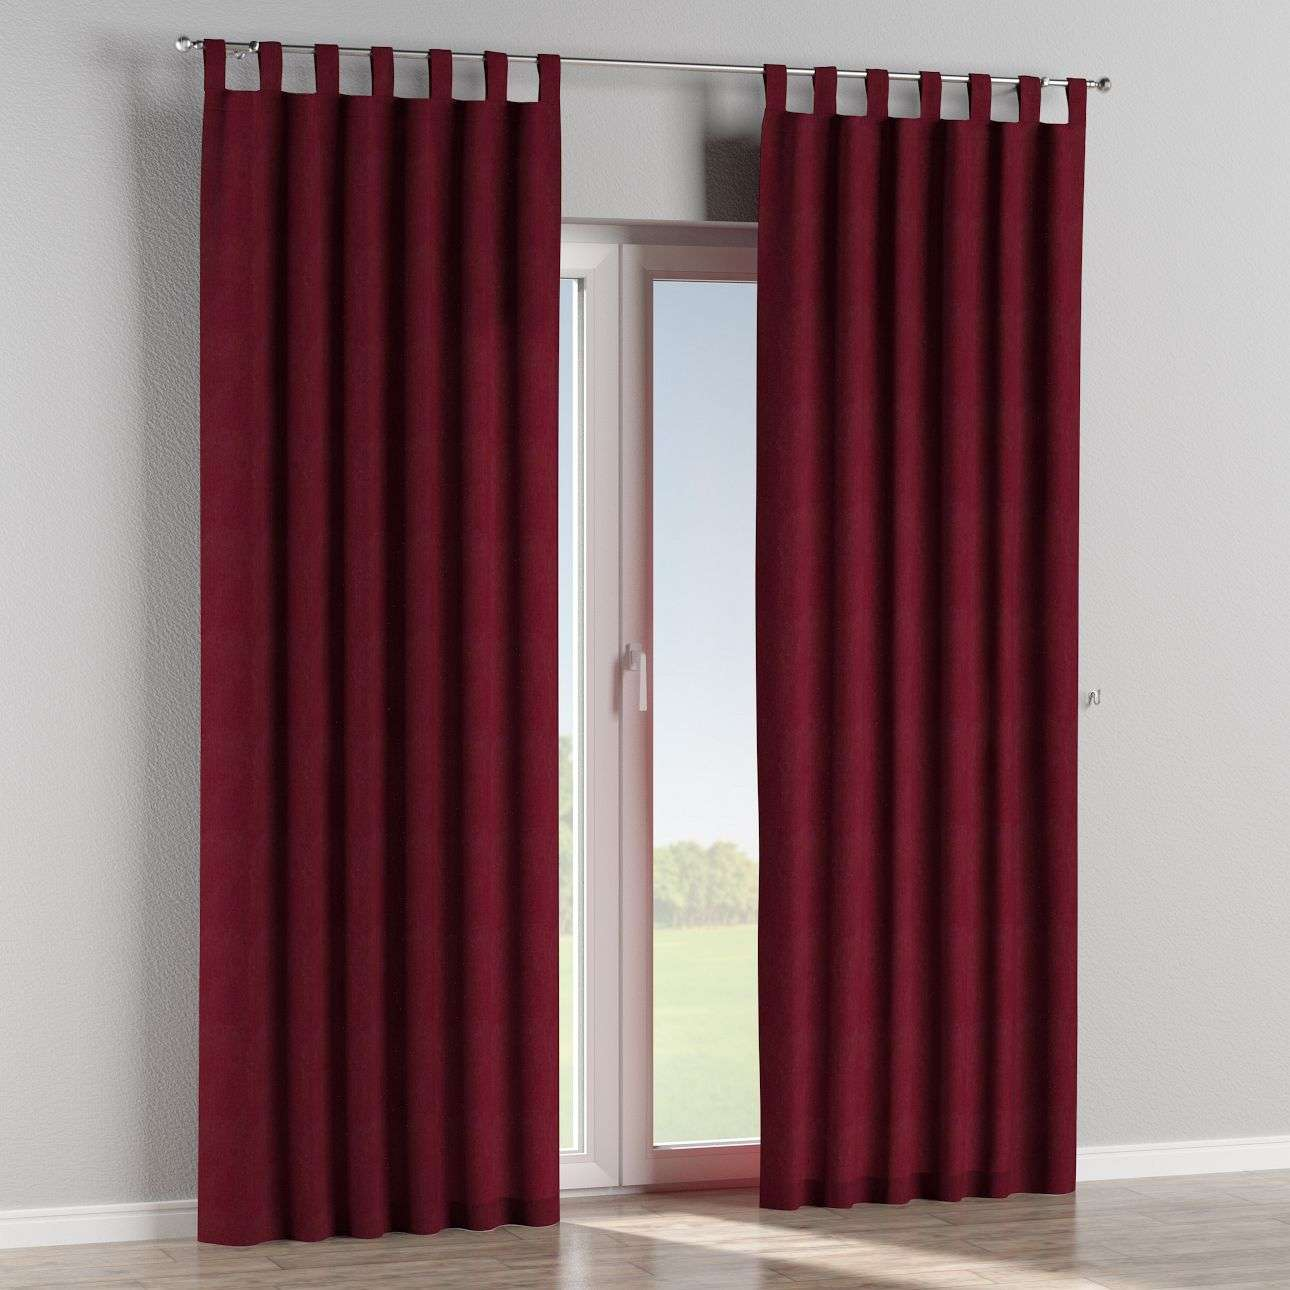 Tab top curtains in collection Chenille, fabric: 702-19